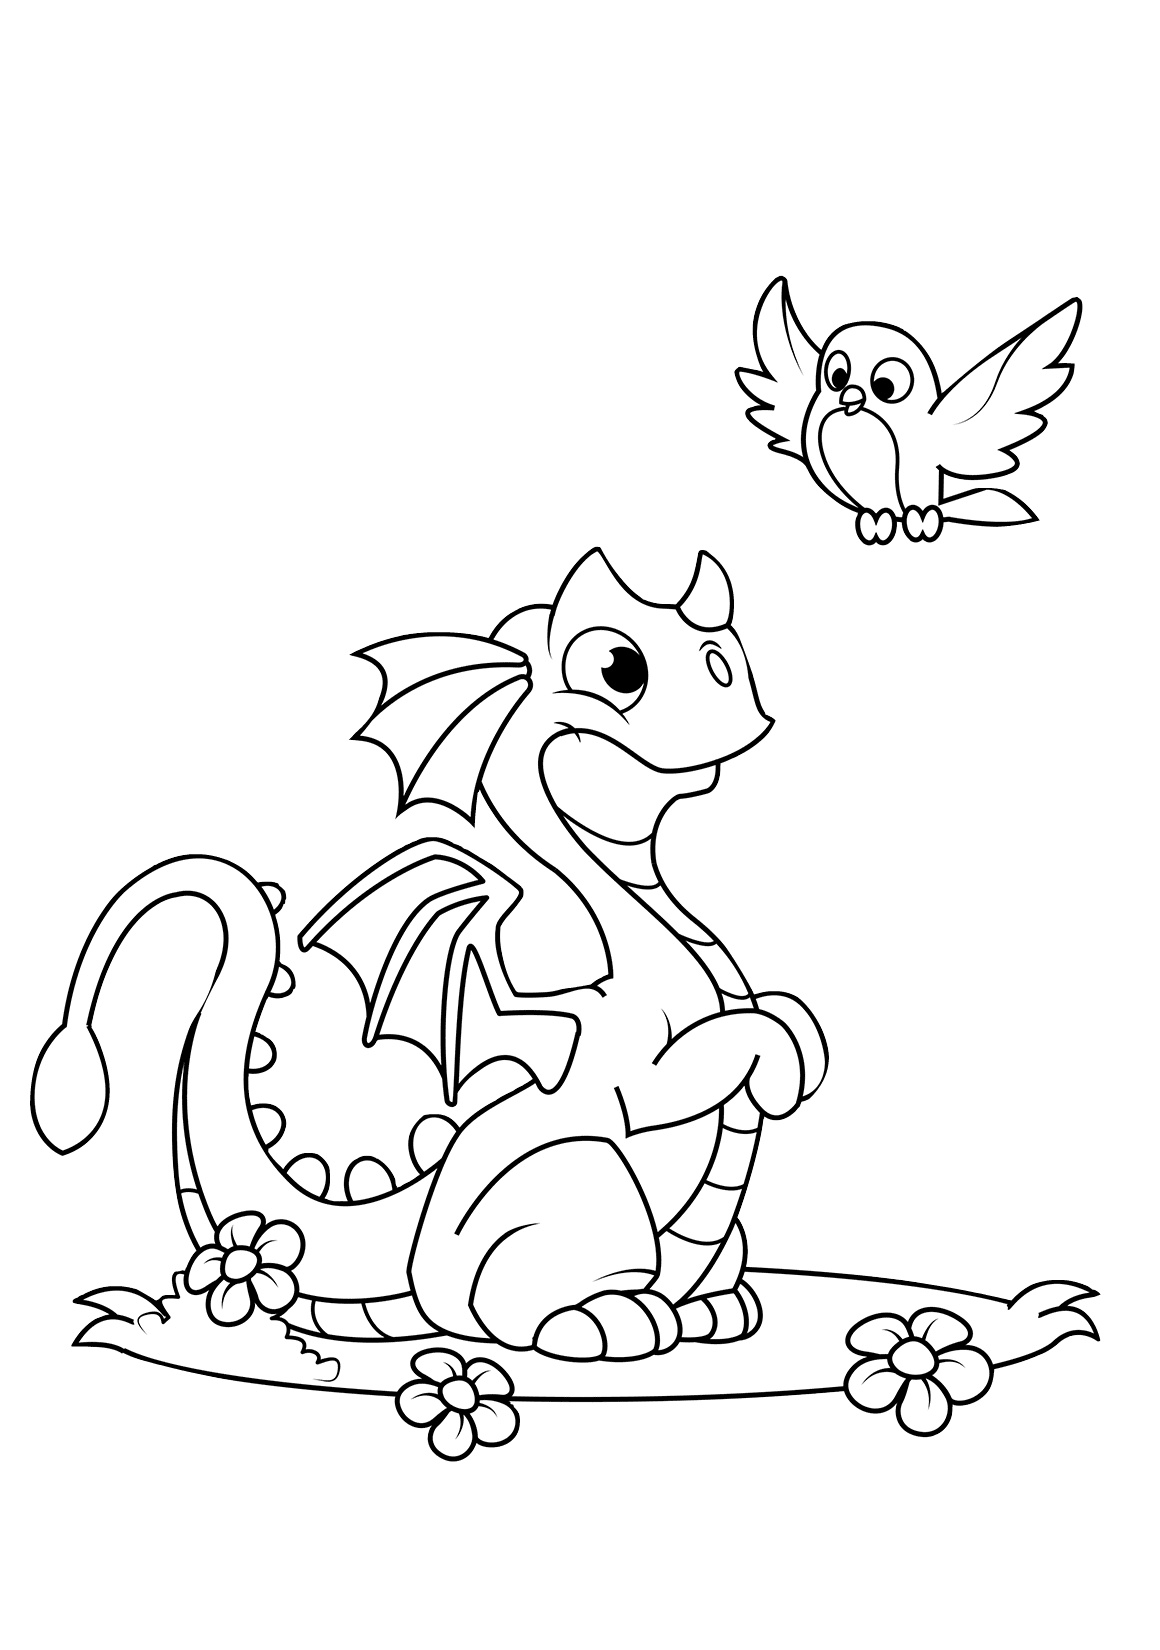 Humble Dragon Playing with a Bird Coloring Pages for Toddlers